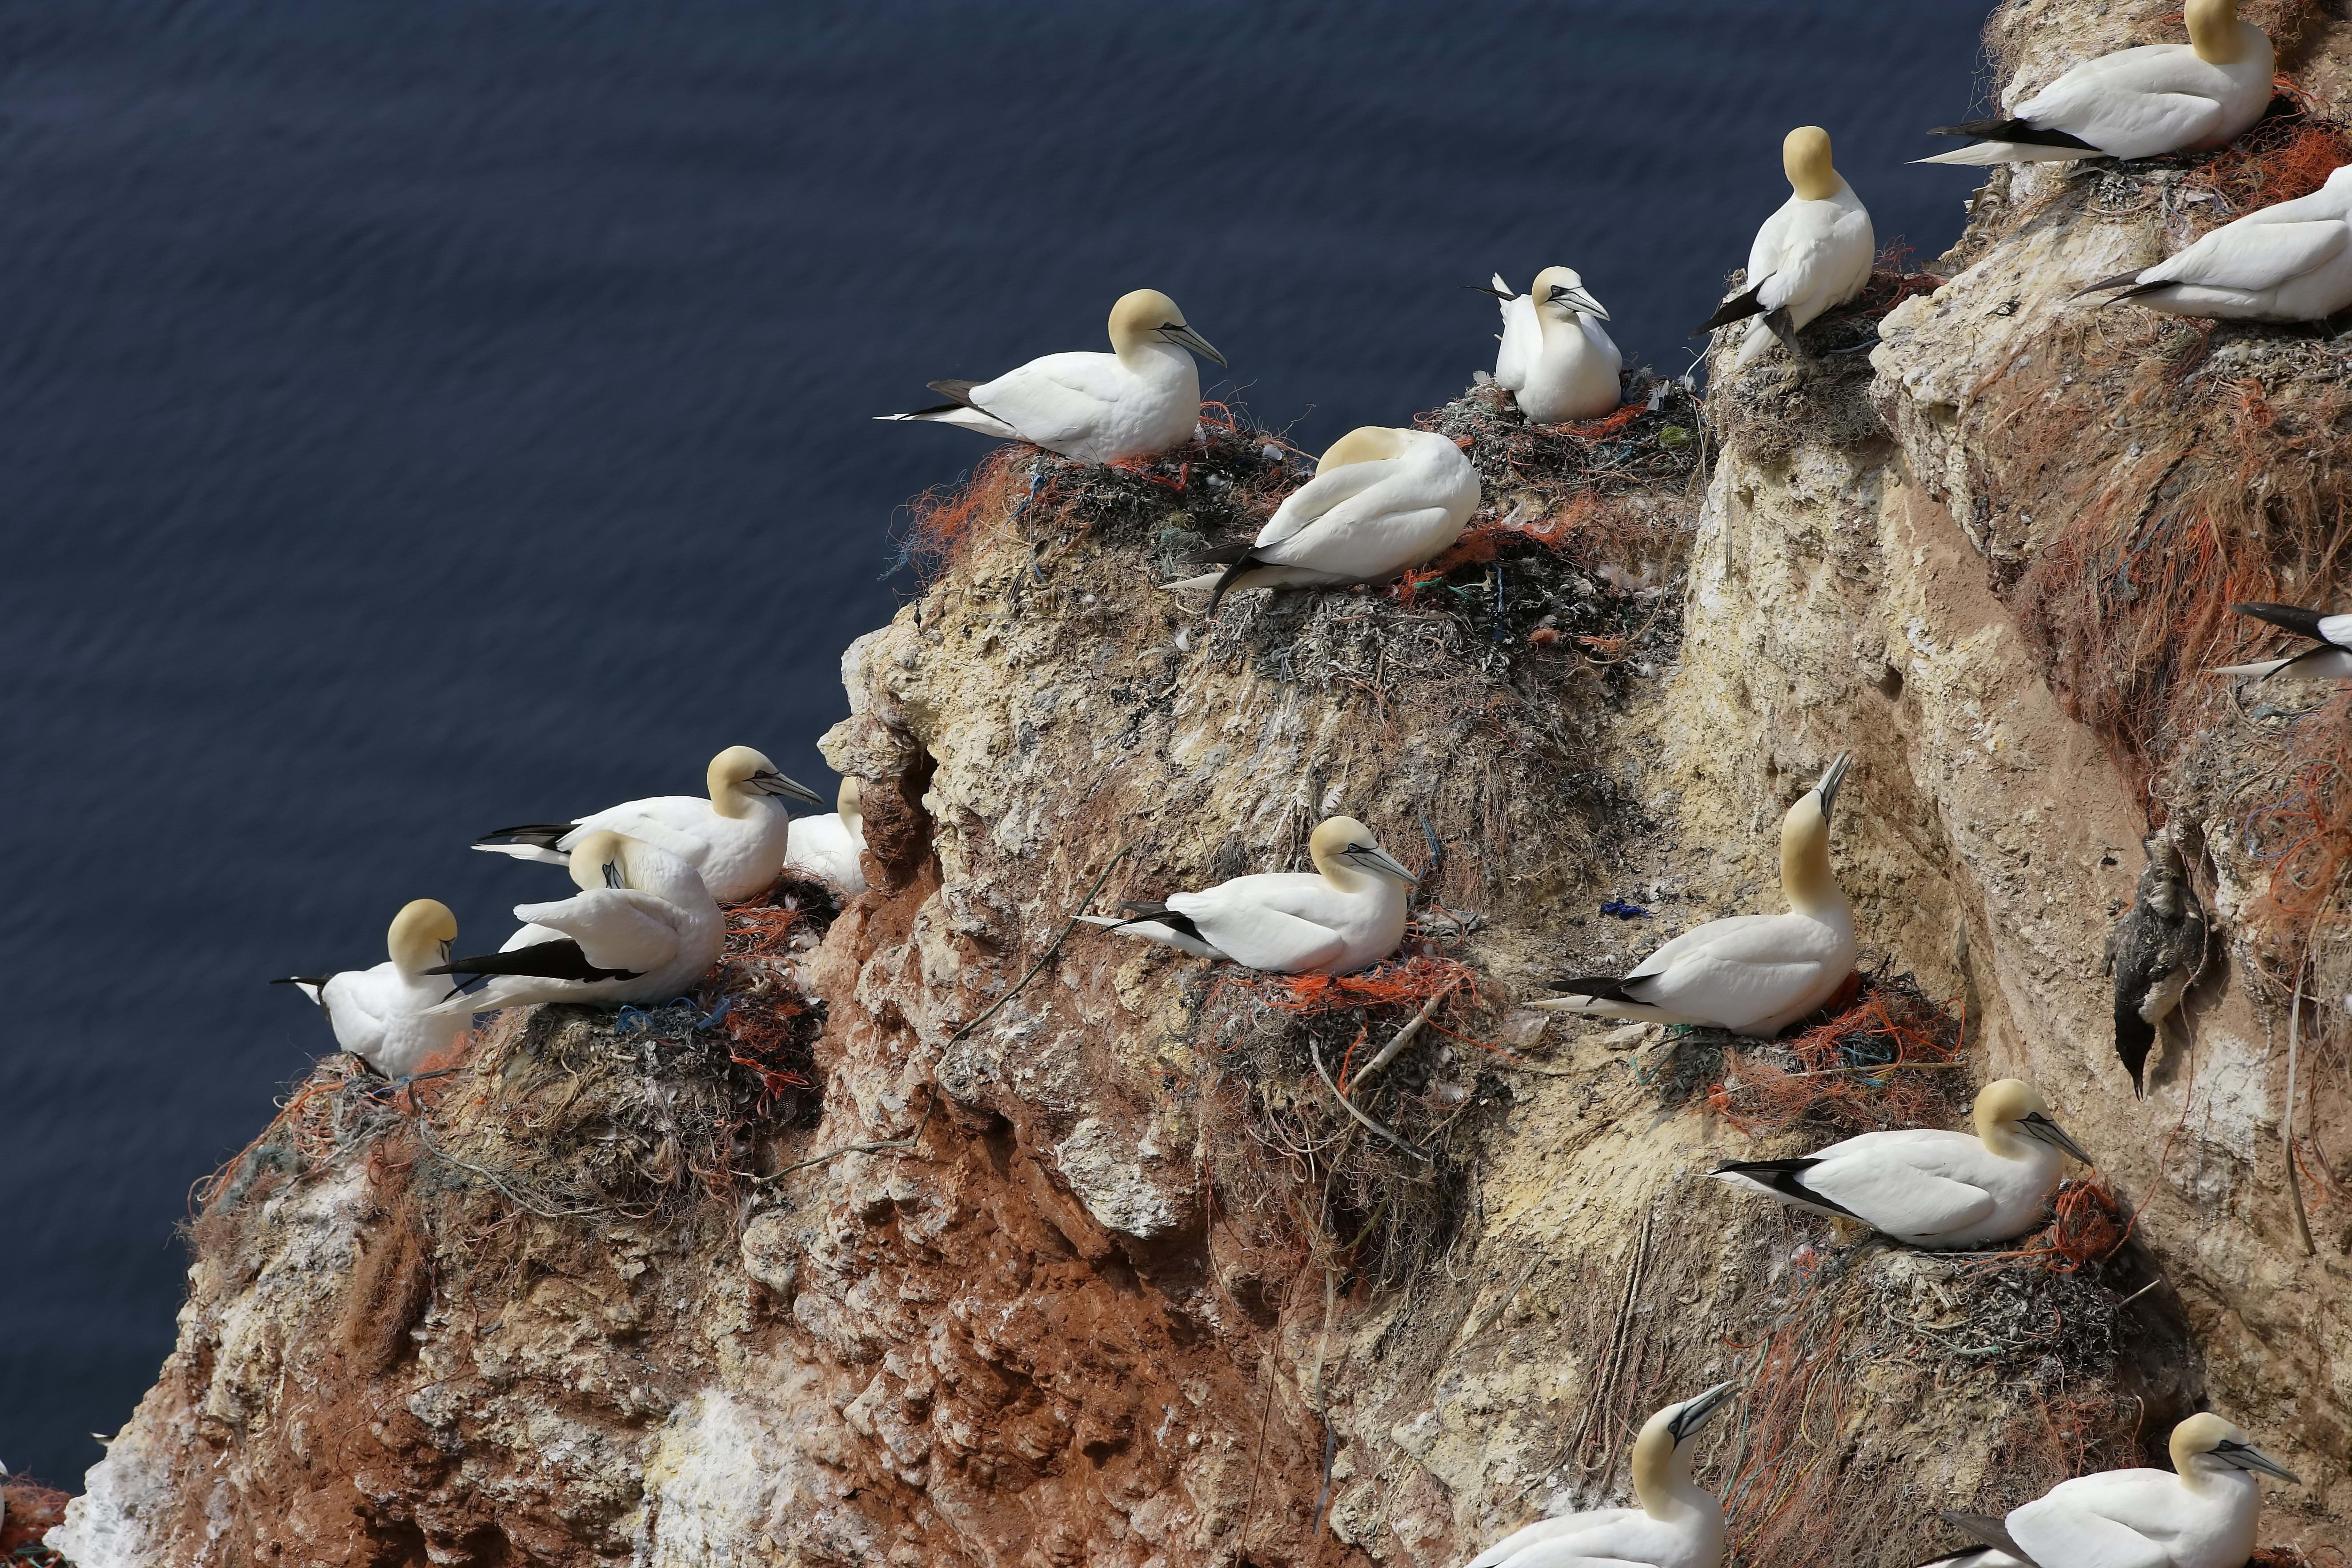 66843 download wallpaper Animals, Nest, Rock, Seagulls screensavers and pictures for free